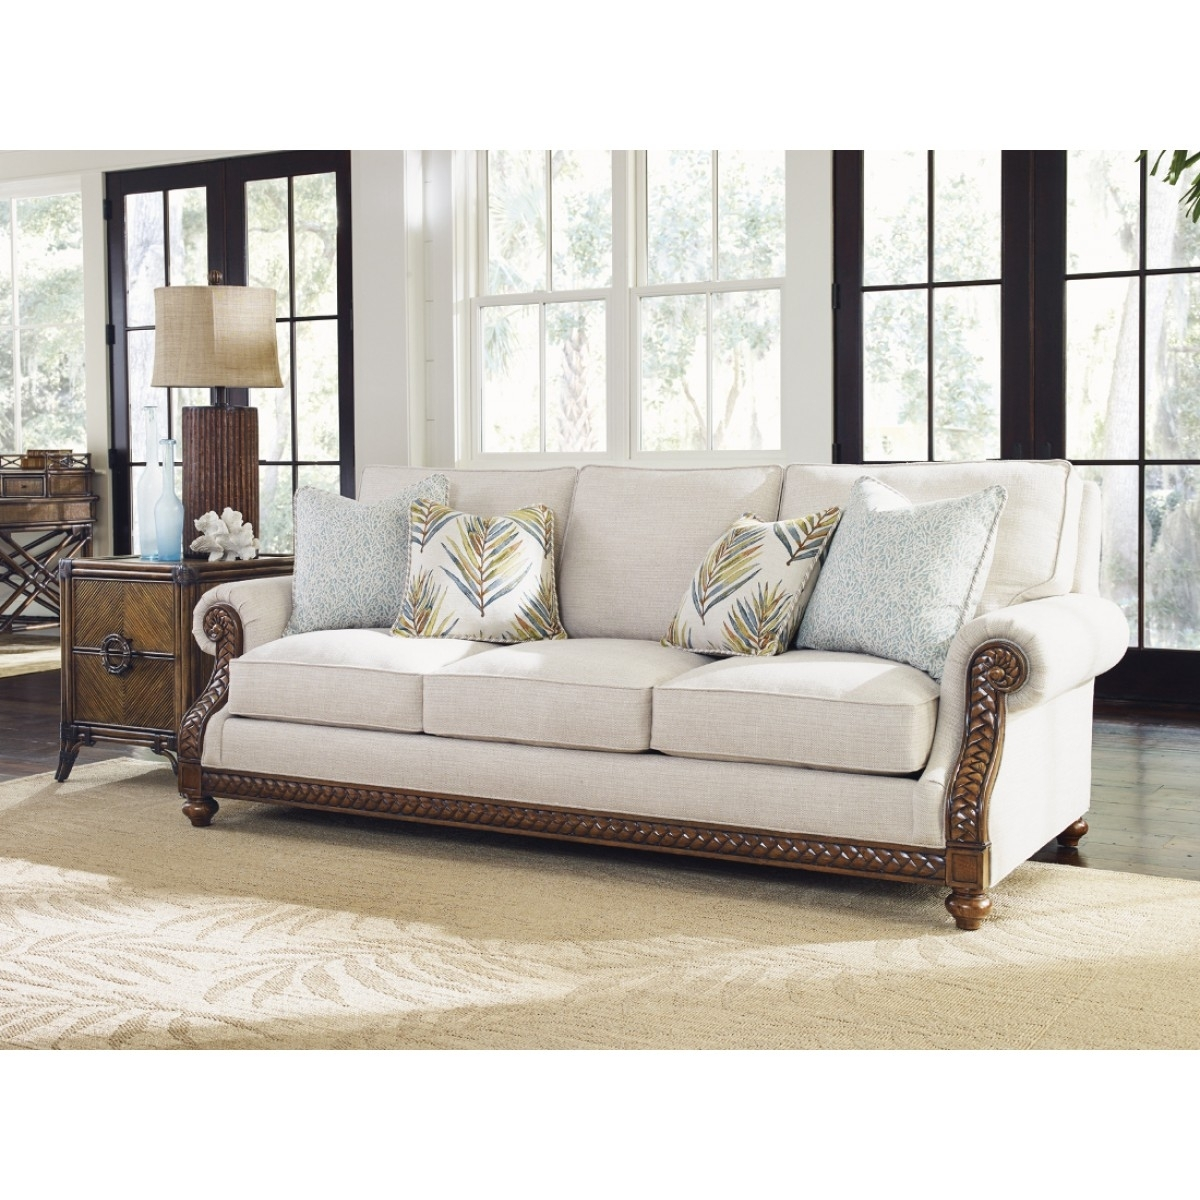 Tommy Bahama Home Bali Hai Shoreline Sofa With Marcus Oyster 6 Piece Sectionals With Power Headrest And Usb (View 9 of 30)